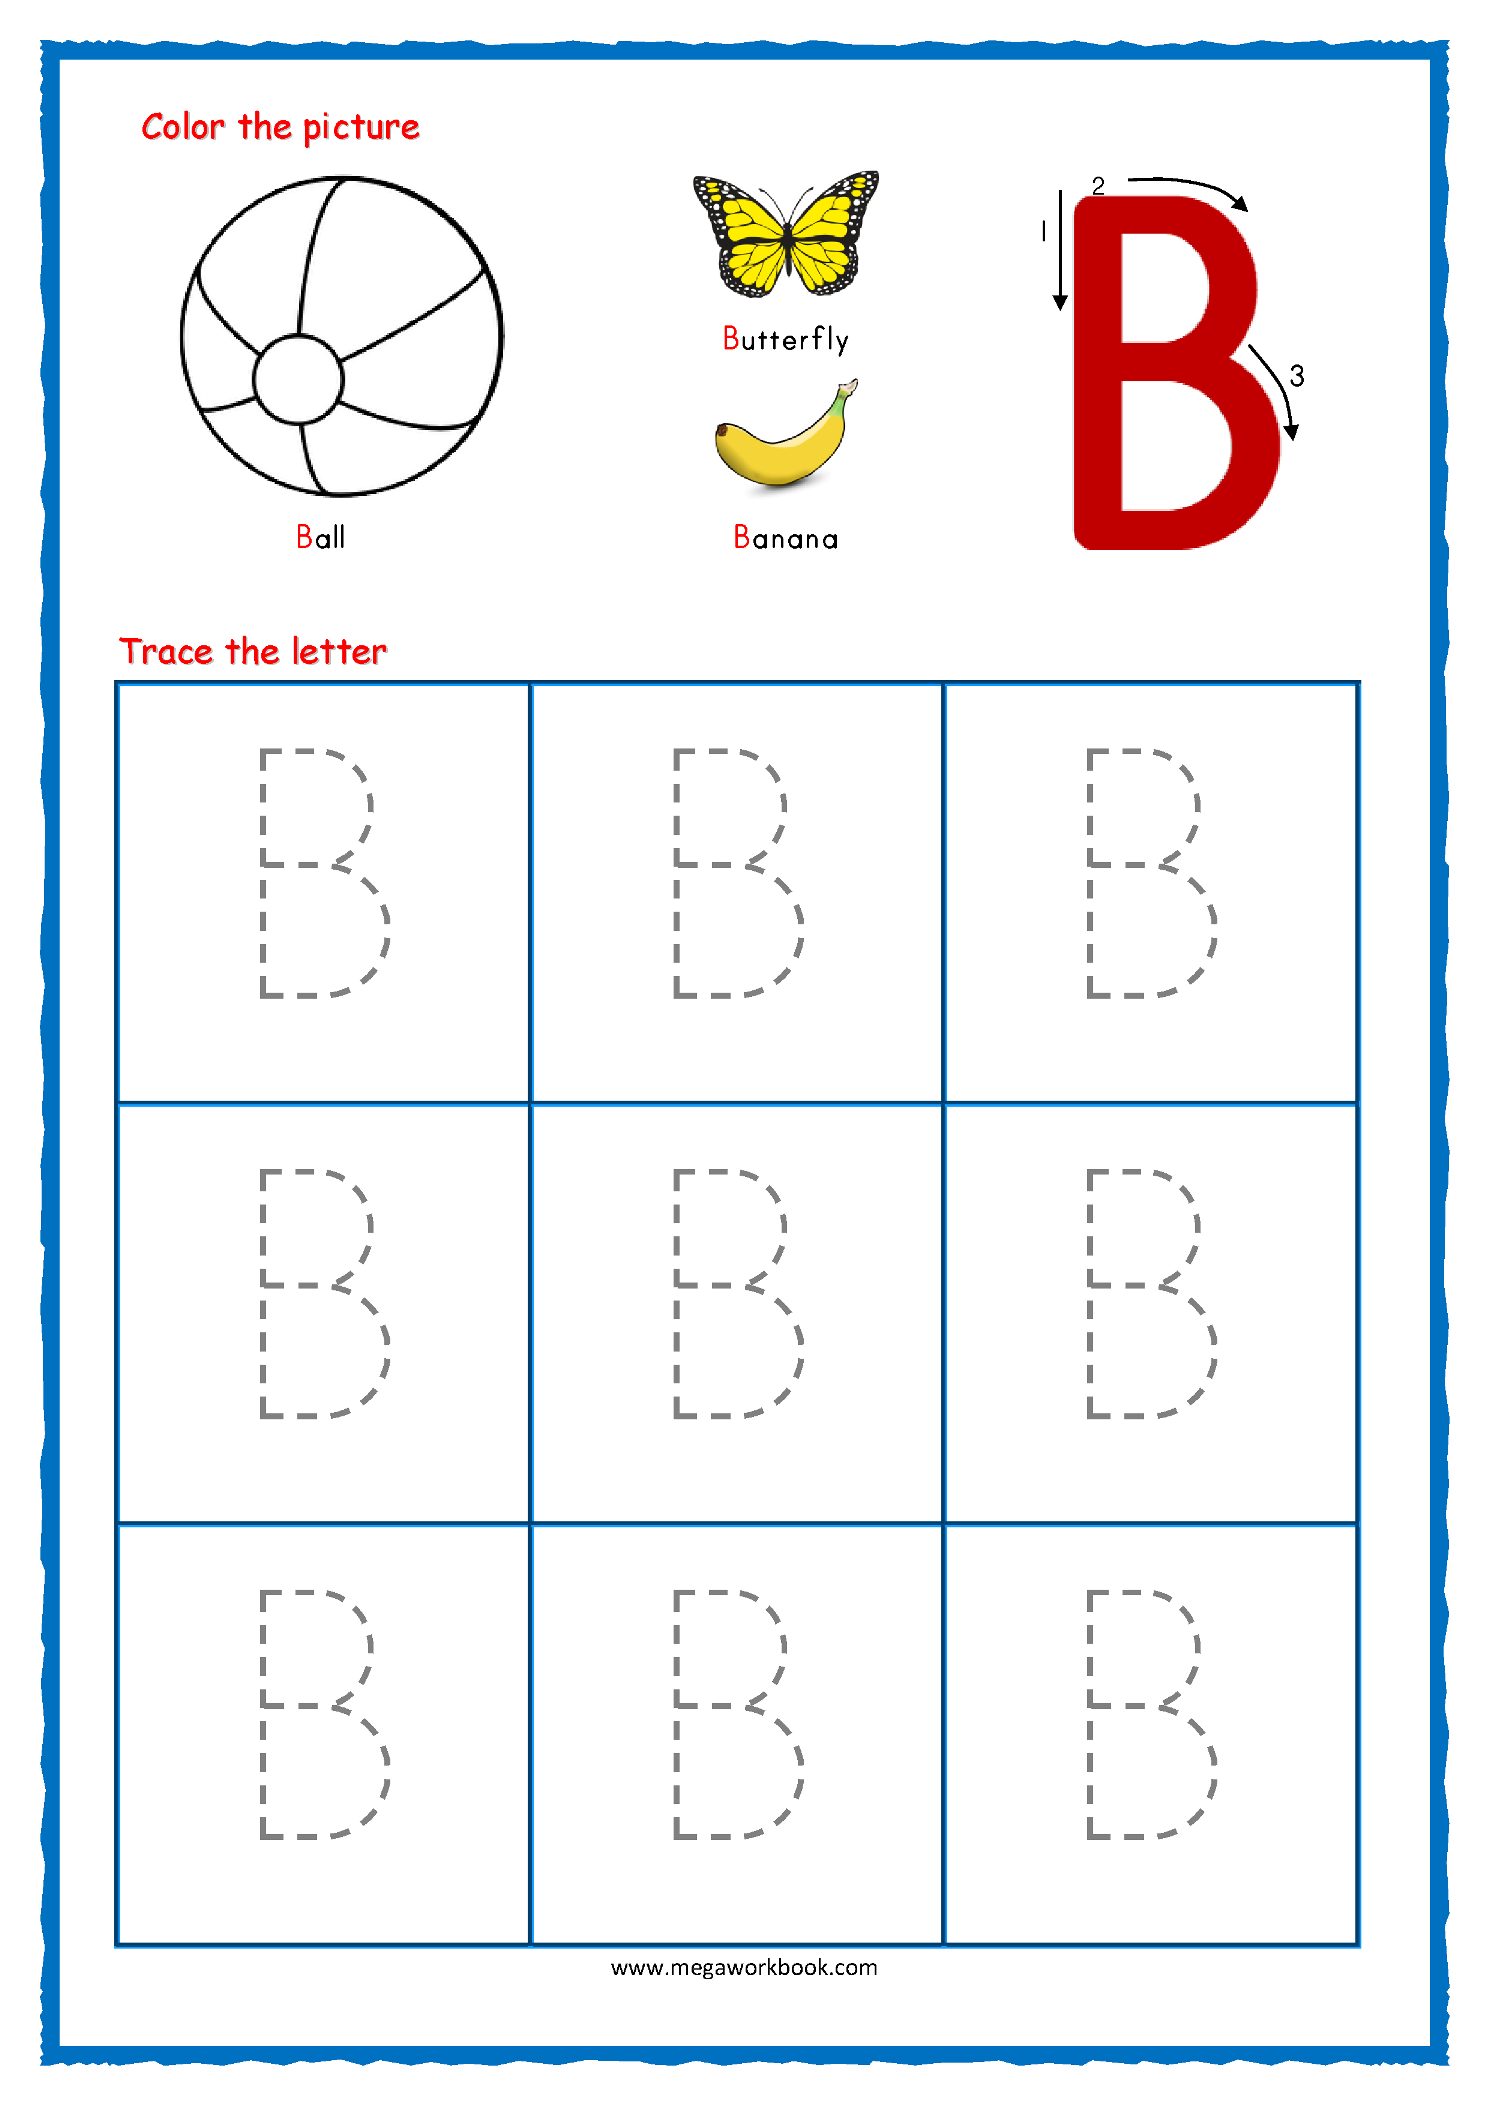 Tracing Letters - Alphabet Tracing - Capital Letters regarding Alphabet Tracing Printables